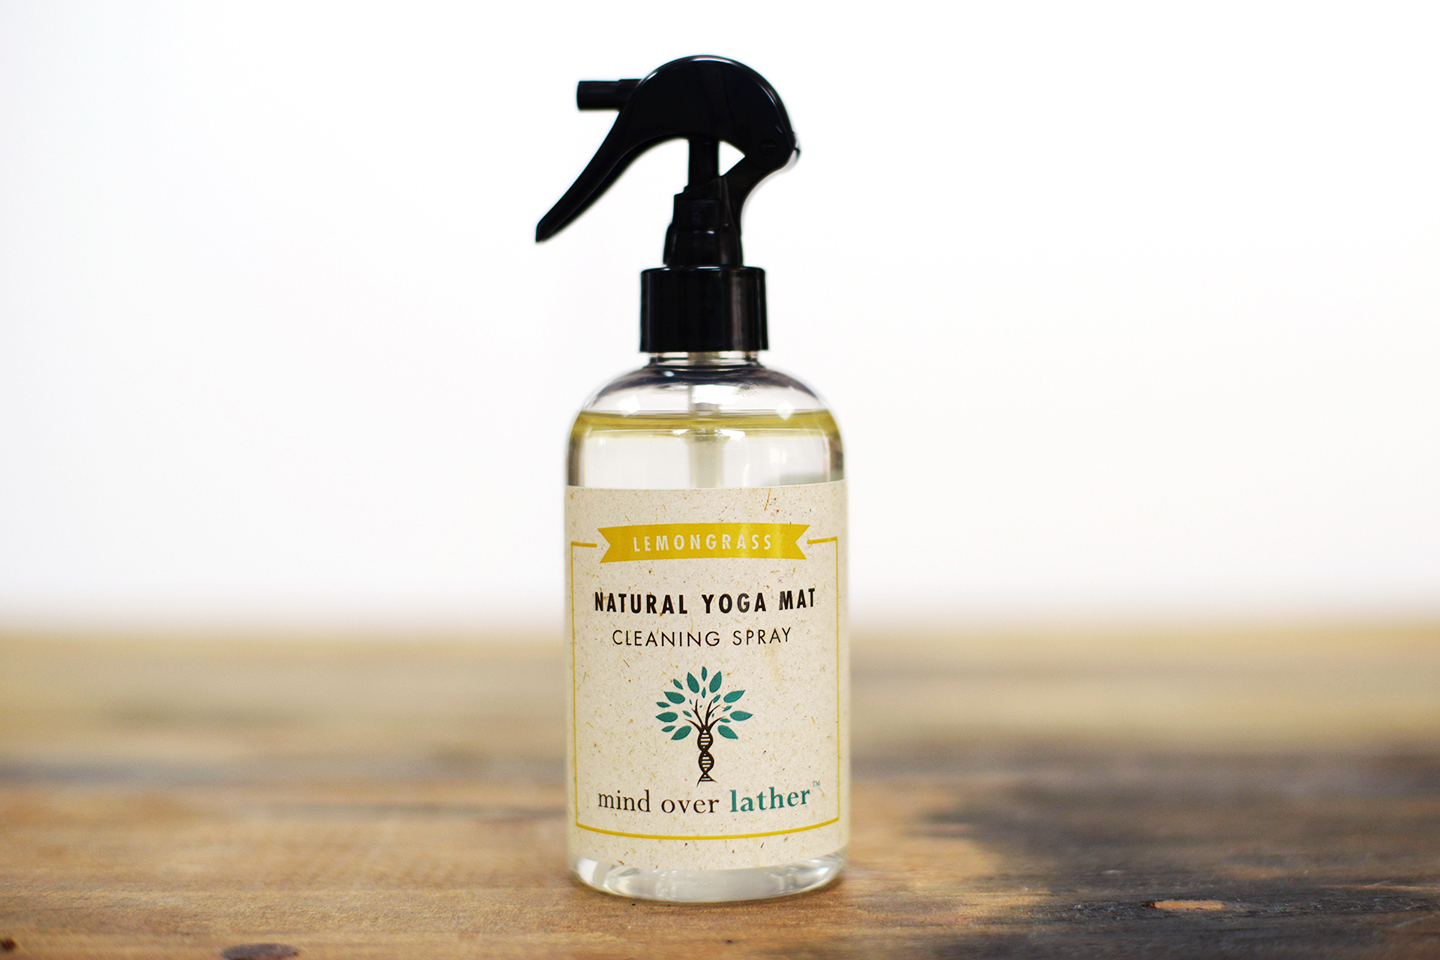 Mind Over Lather Lemongrass Yoga Mat Cleaning Spray